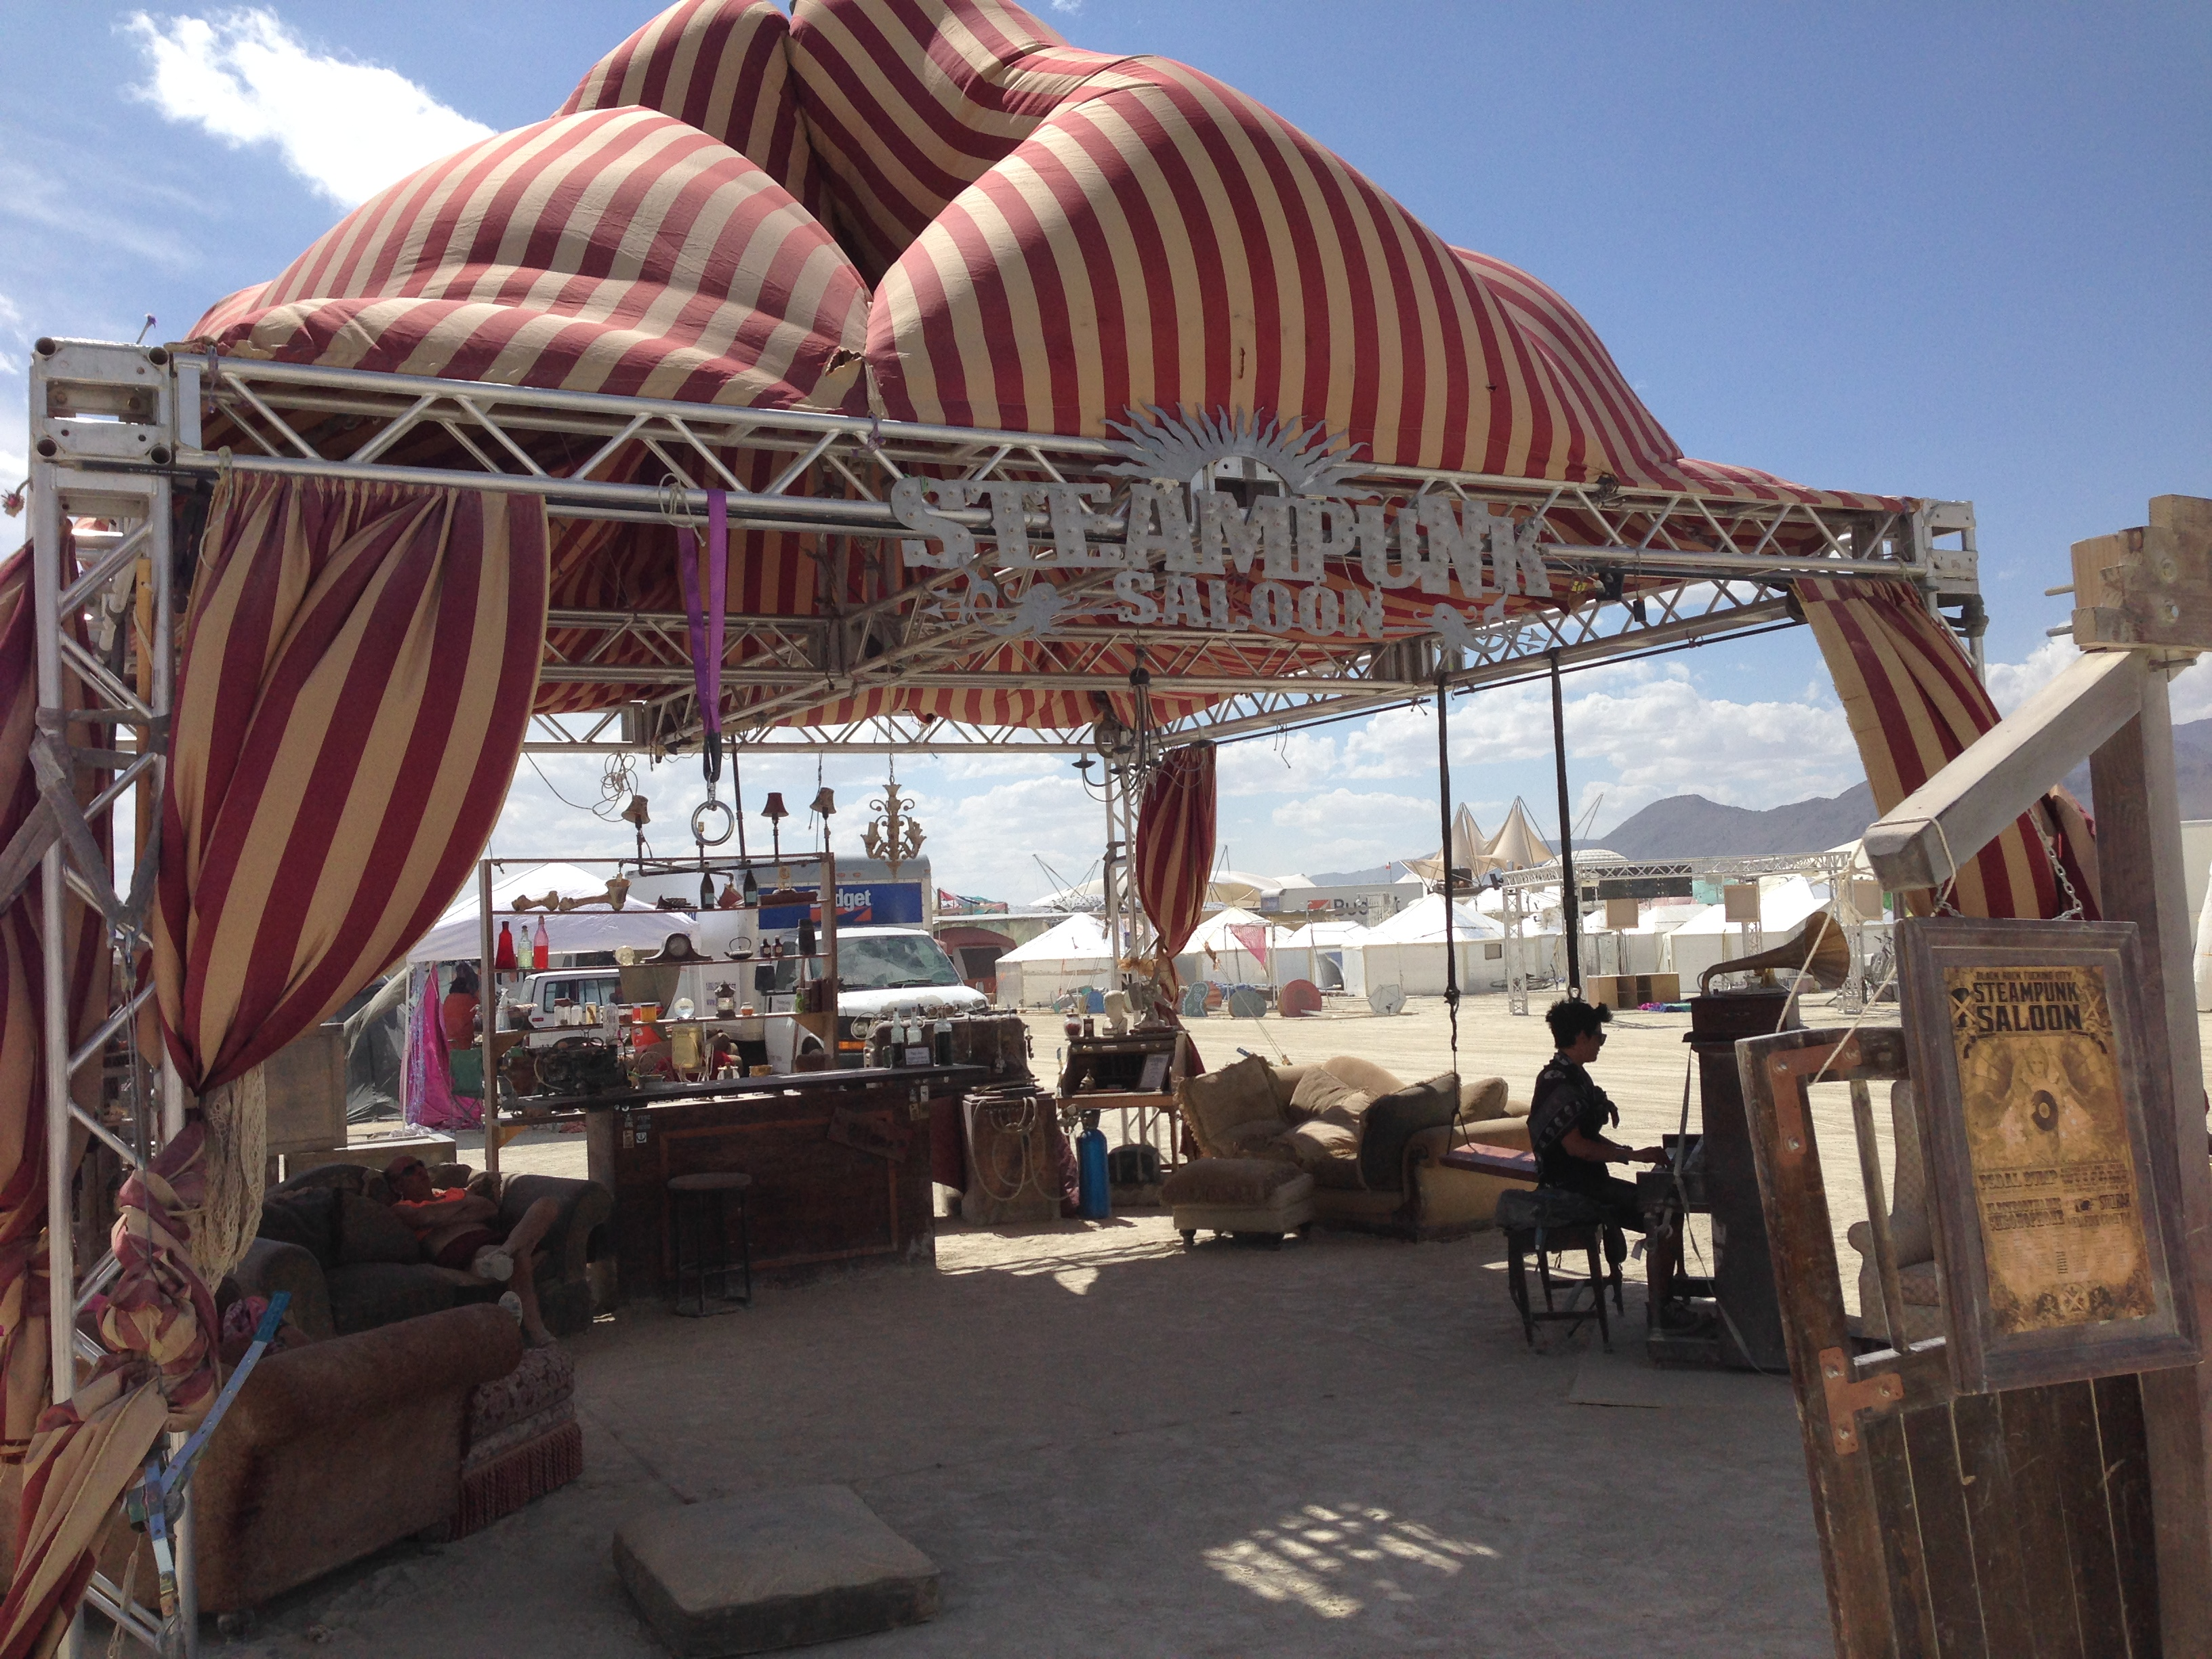 Steampunk Saloon!  (Tents like this are marvelous shade structures.)